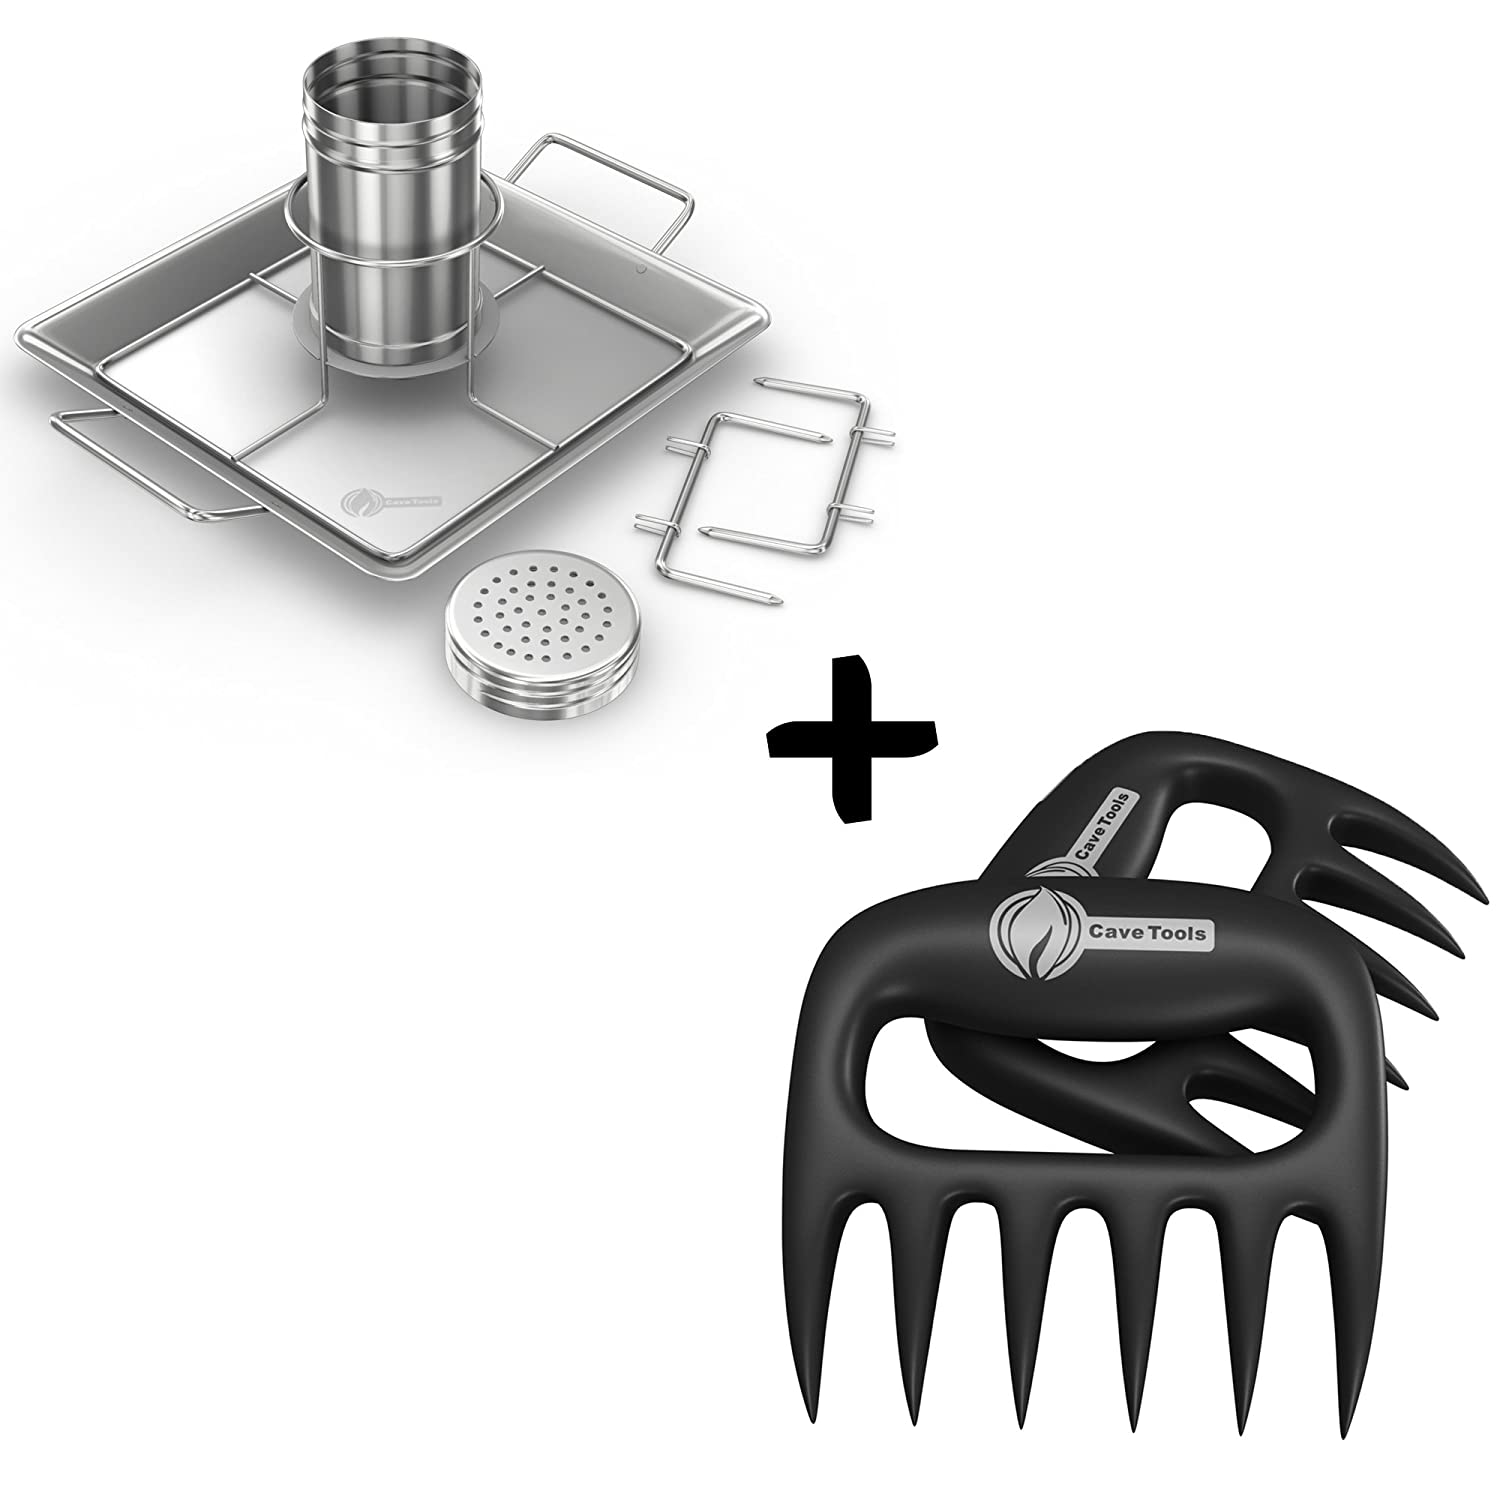 Beer Can Chicken Holder Rack + Pulled Pork Shredder Claws - Strongest BBQ Meat Forks - Shredding Handling & Carving Food - Claw Handler Set for Pulling Brisket from Grill Smoker or Slow Cooker